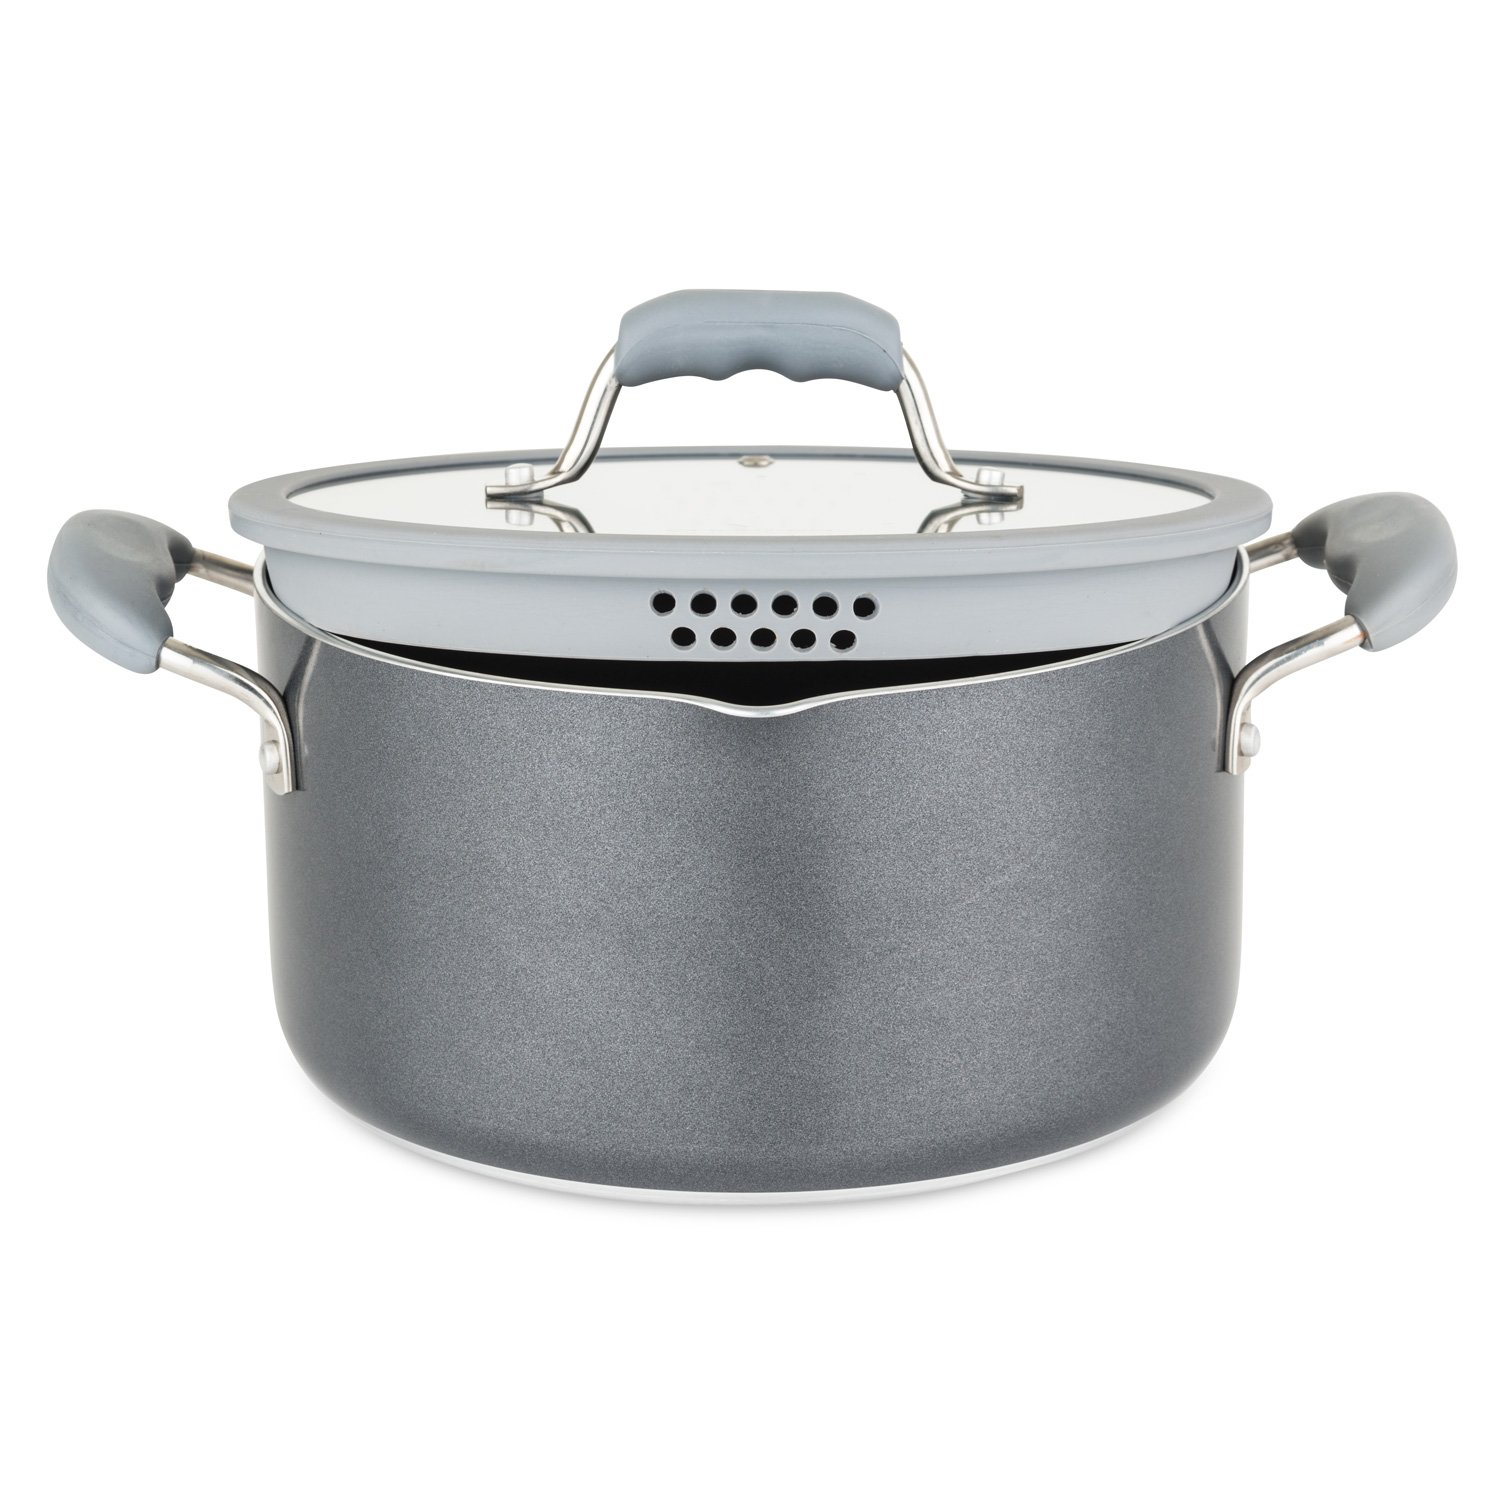 Chopped 60141-9990-GRY Aluminum Cookware Set, 10 Piece, Gray by Chopped (Image #5)